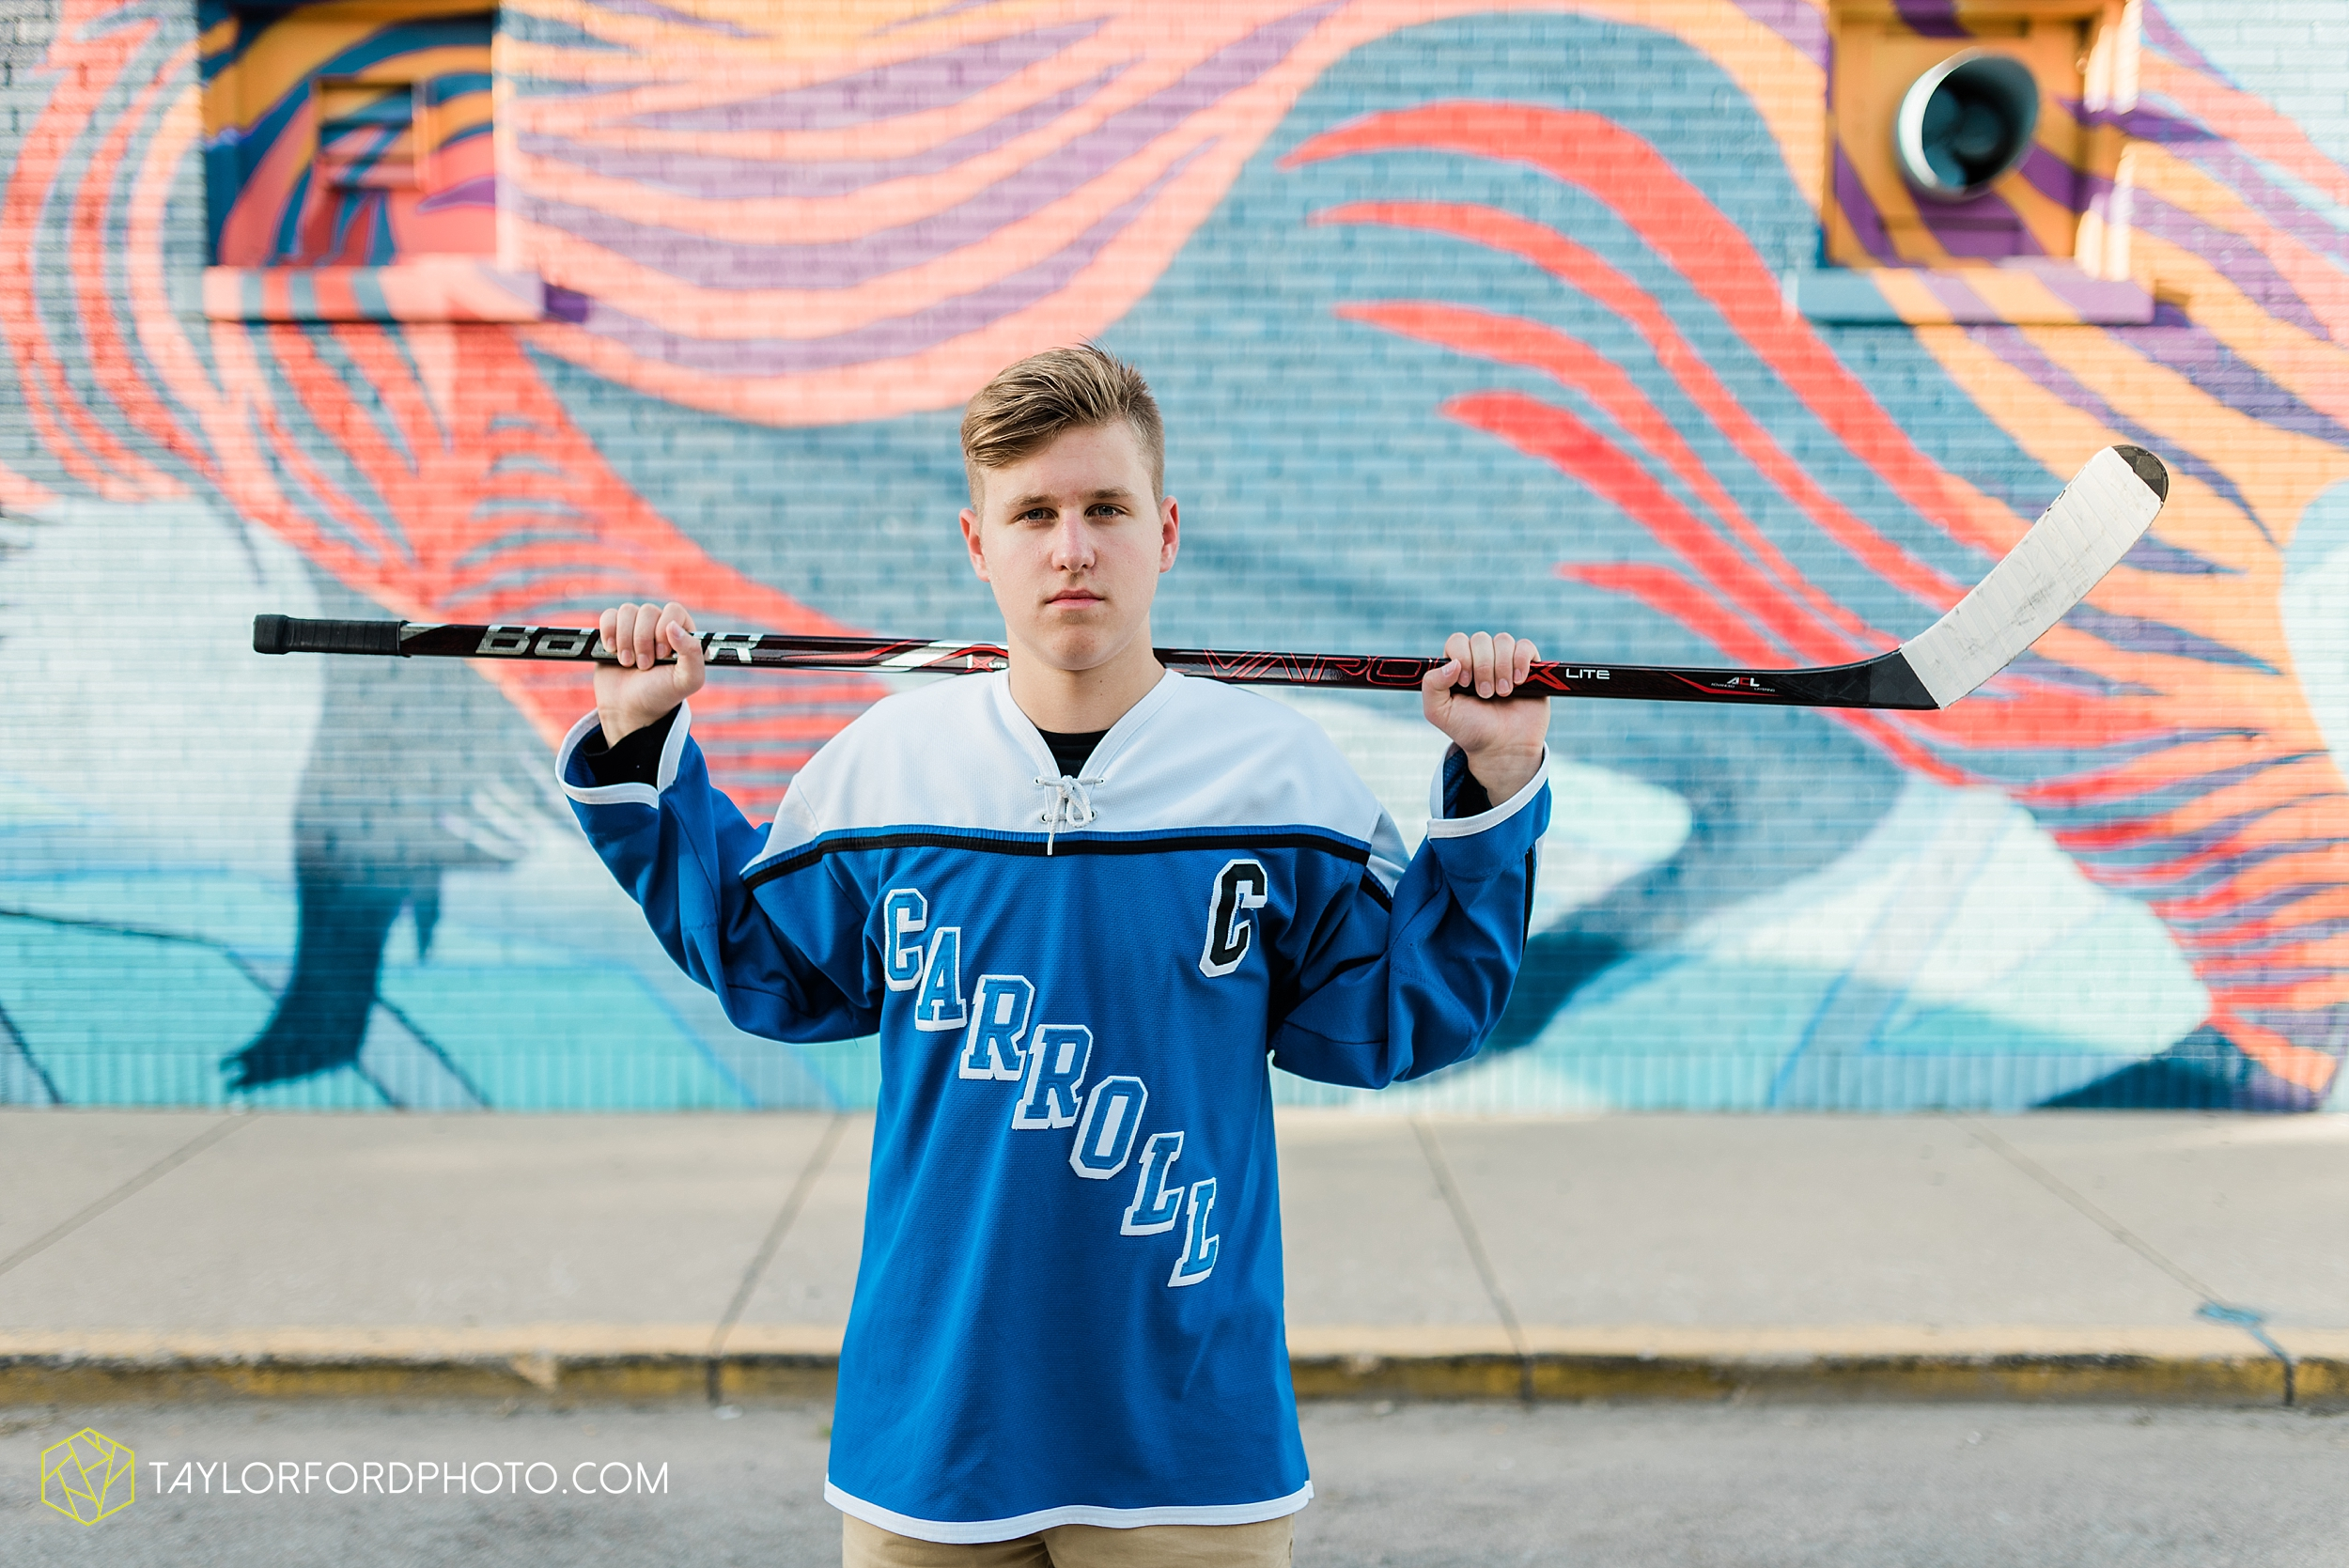 alex-duffus-fort-wayne-indiana-senior-caroll-high-school-chargers-photographer-taylor-ford-photography_0470.jpg